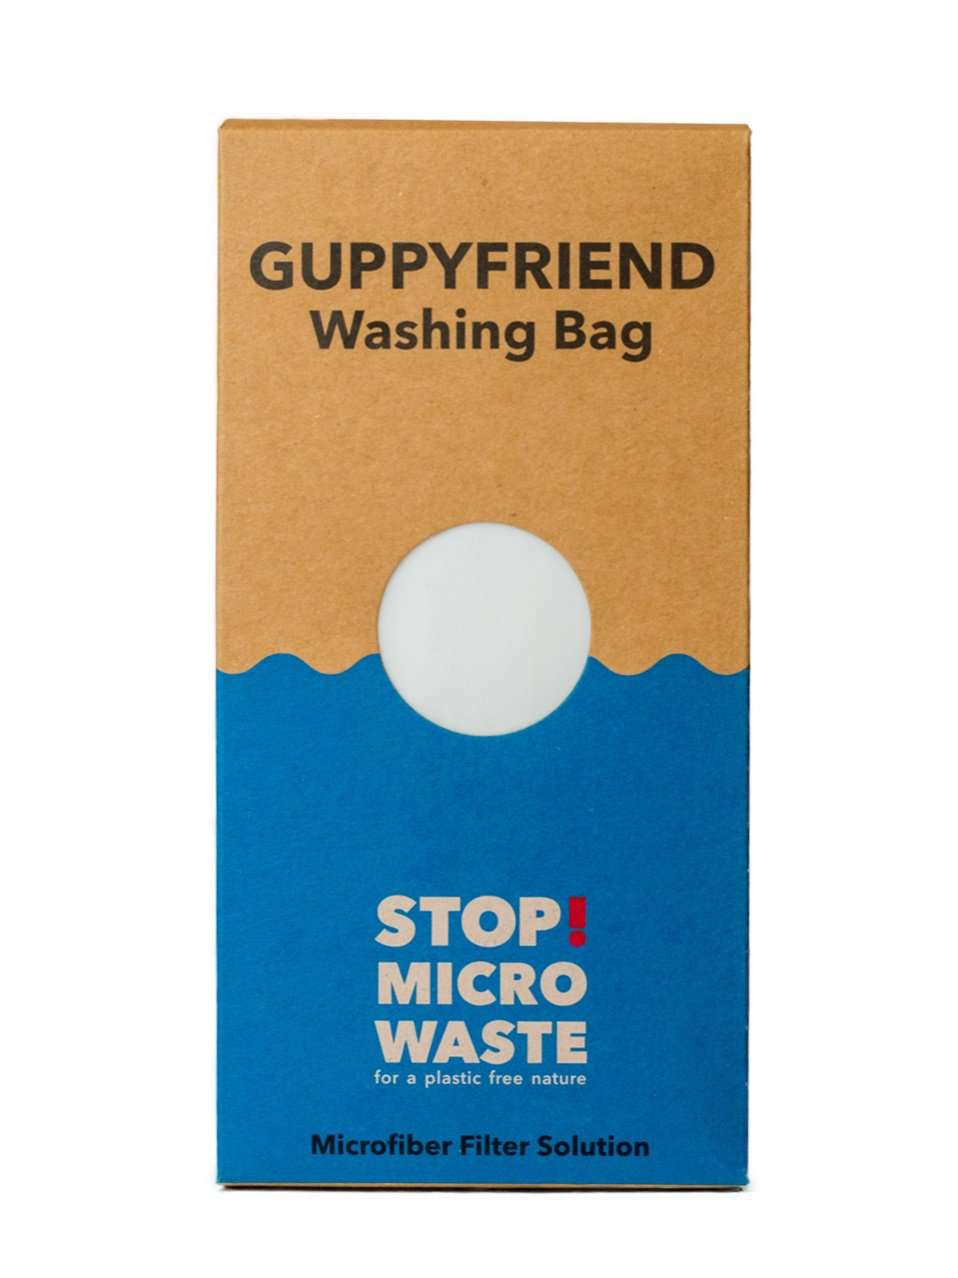 The GuppyFriend Washing Bag